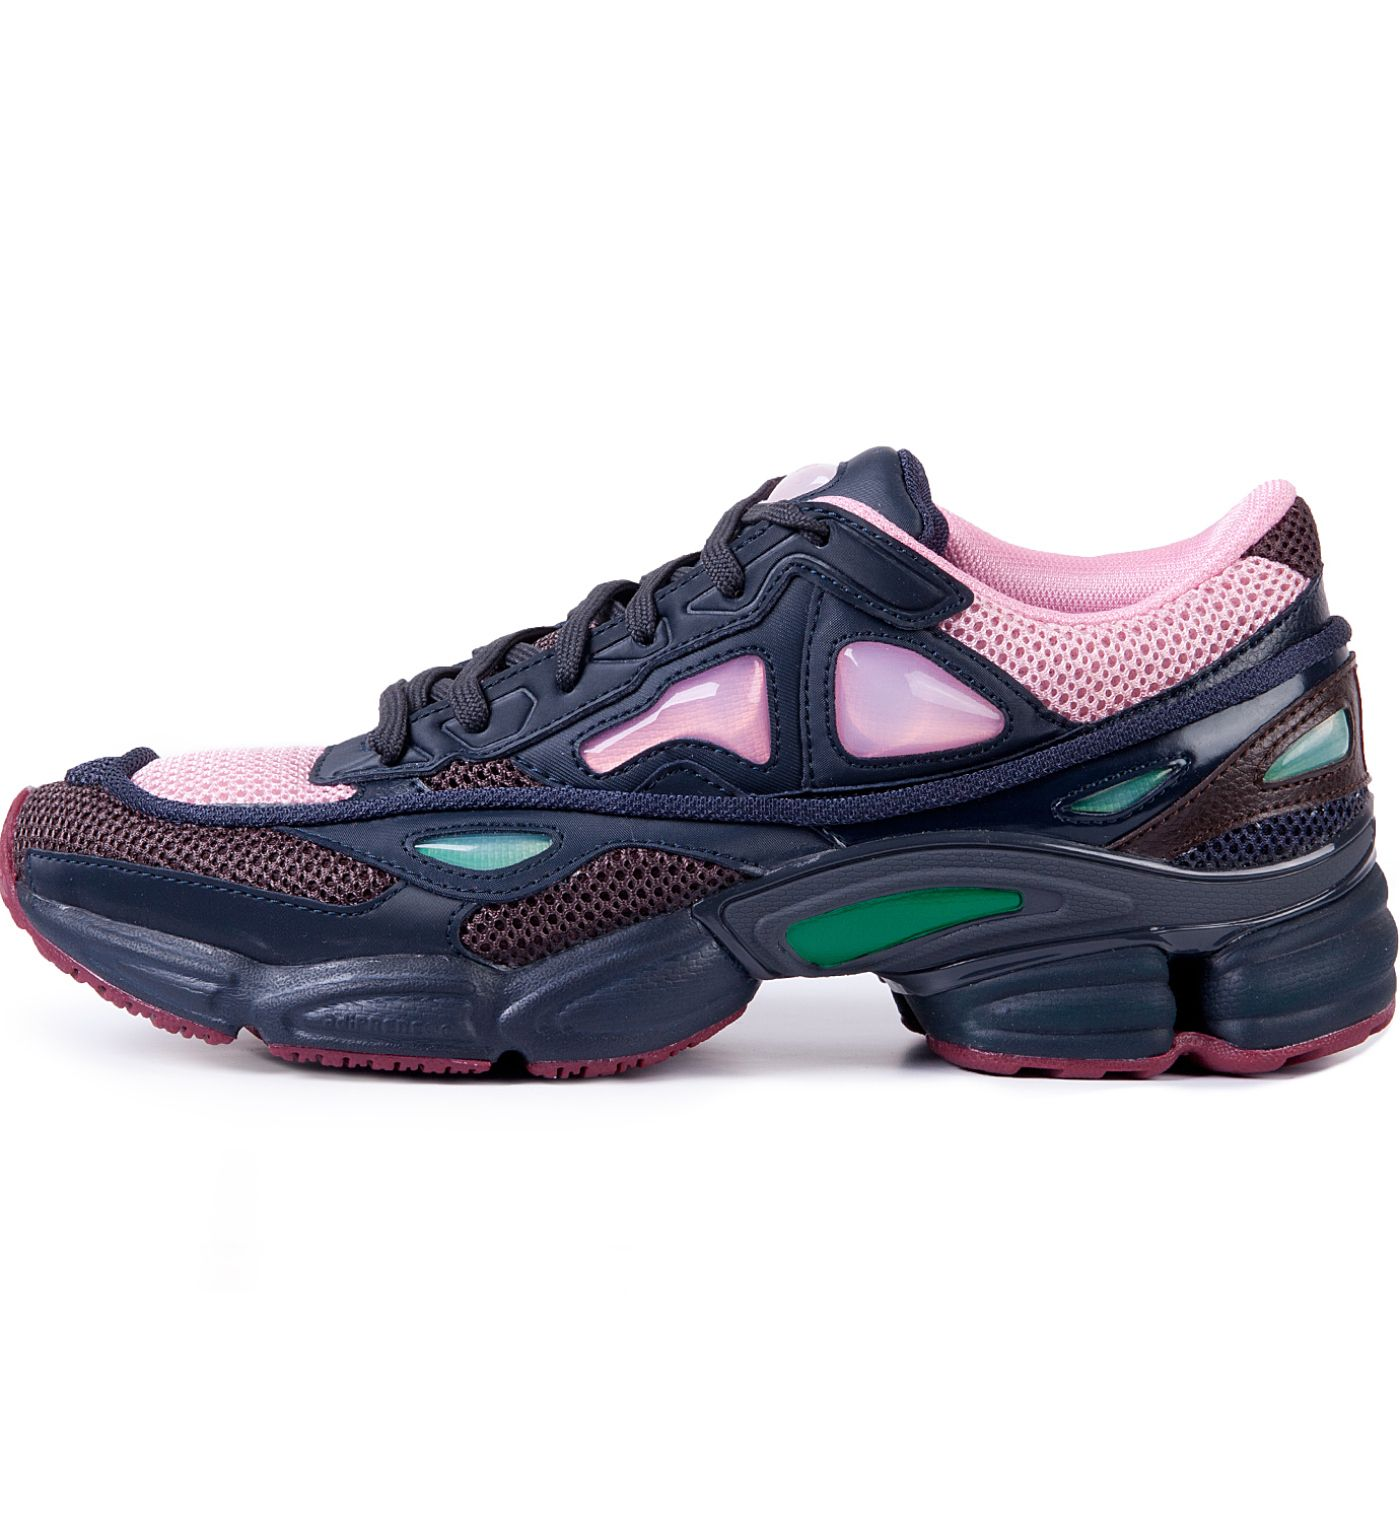 30737ce28228a Adidas x Raf Simons Pink Ozweego 2 Runner In Runner On Basic Sole ...